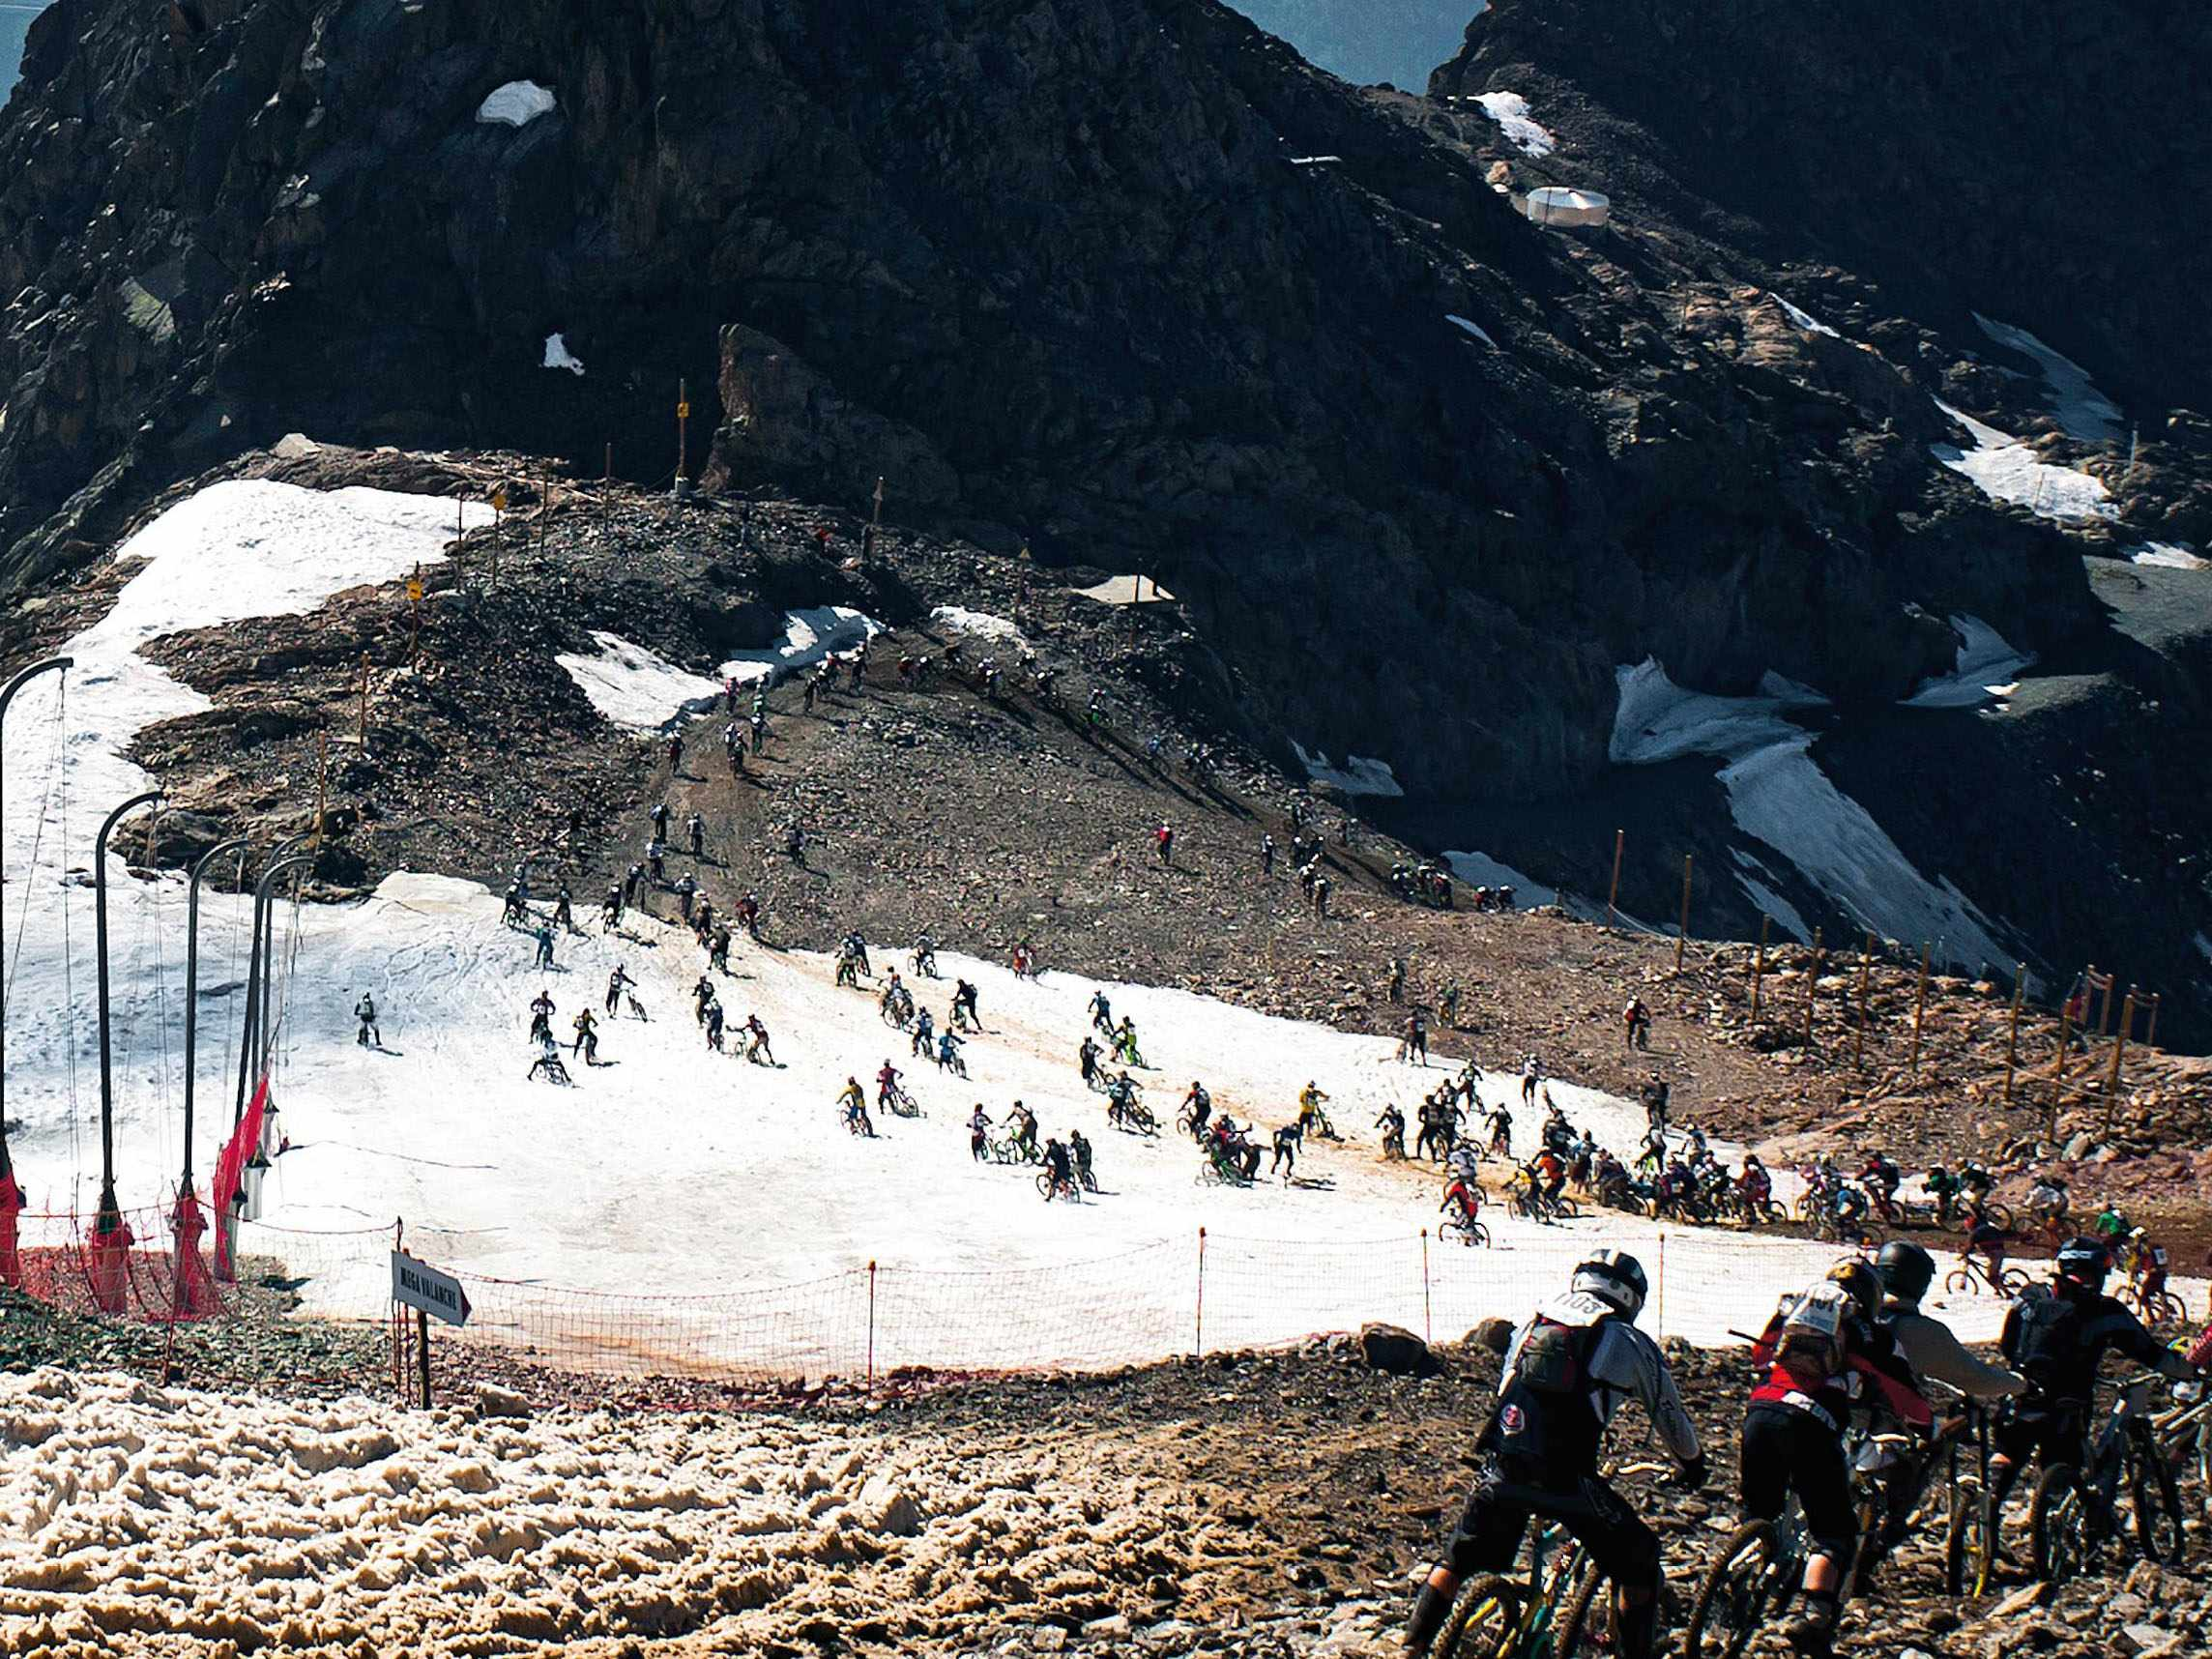 Riders can expect every type of terrain on the Alpe d'Huez Megavalanche